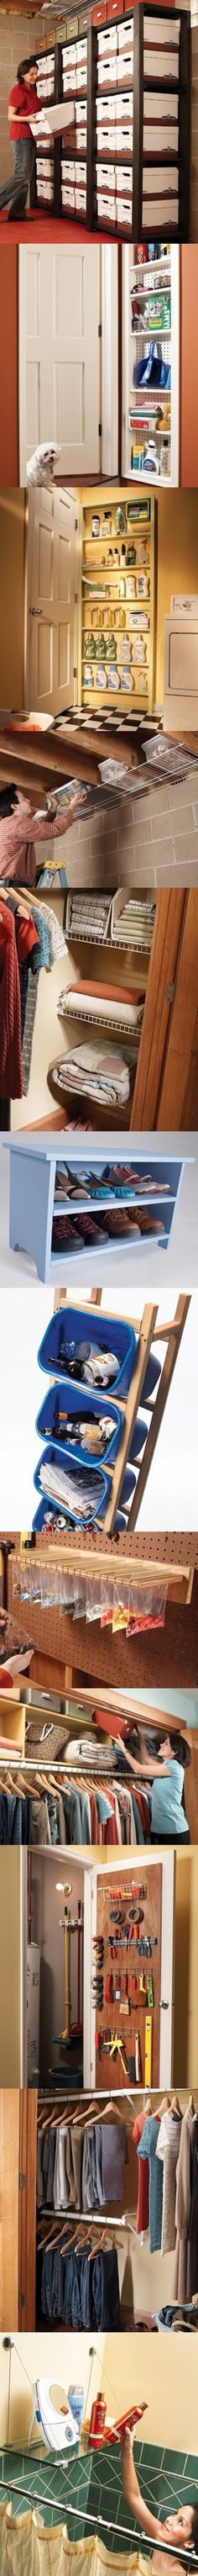 12 Simple Storage Solutions